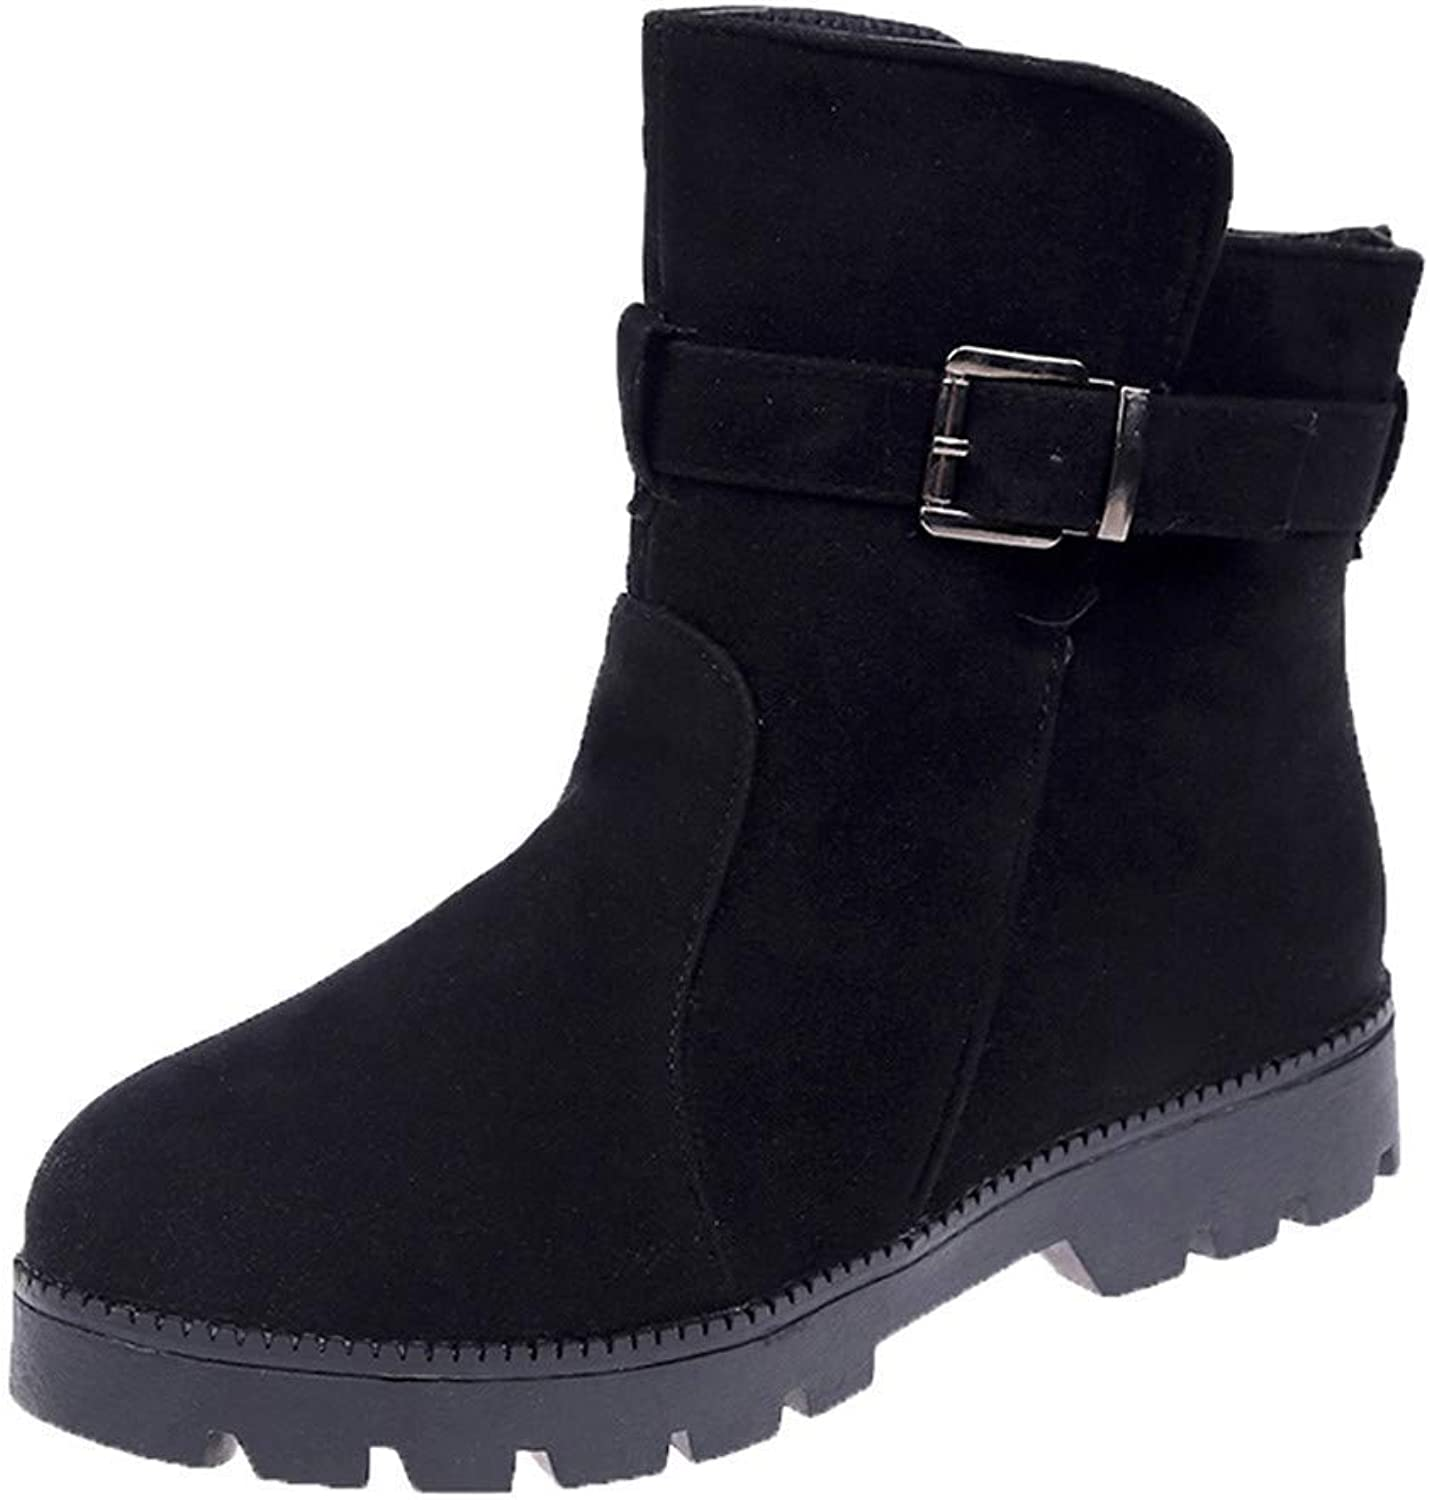 Dolwins Flat shoes Snow Boots for Women Suede Buckle Strap Boots Round Toe Warm shoes